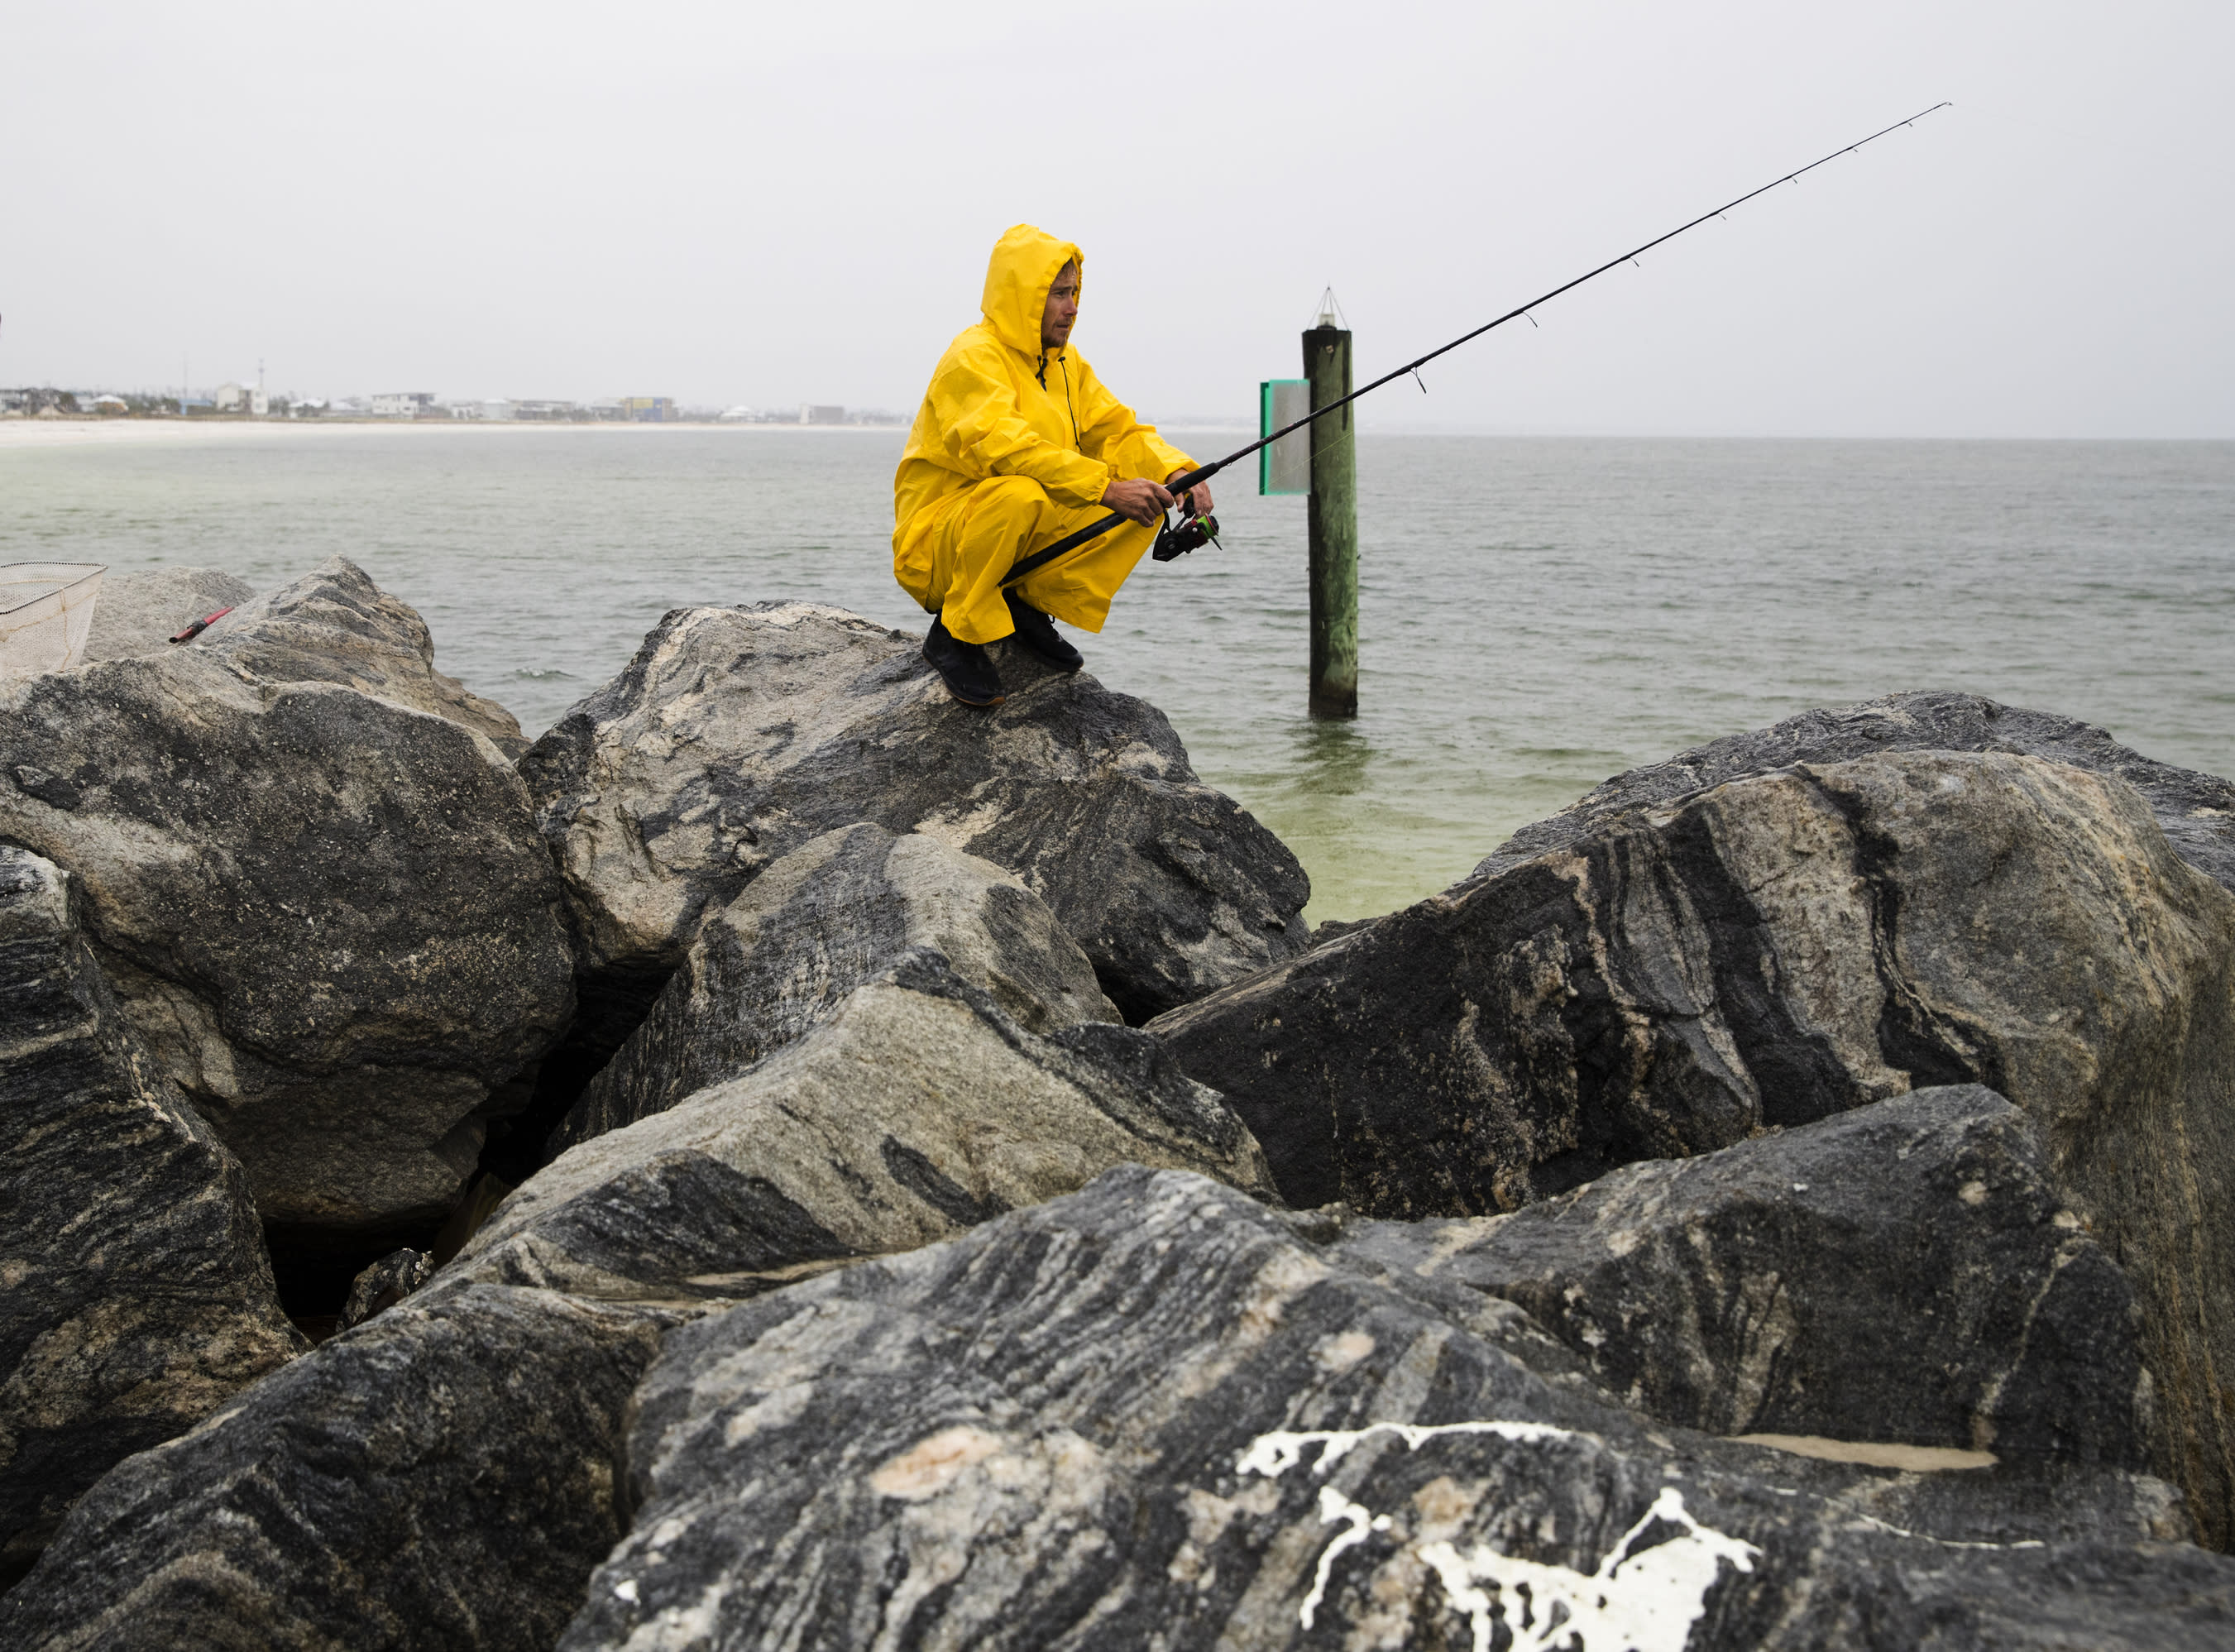 Michael Foster fishes as Tropical Storm Nestor approaches, Friday, Oct. 18, 2019 in Mexico Beach, Fla.. Forecasters say a disturbance moving through the Gulf of Mexico has become Tropical Storm Nestor. The National Hurricane Center says high winds and dangerous storm surge are likely along parts of the northern Gulf Coast. Conditions are expected to deteriorate Friday into early Saturday. (Joshua Boucher/News Herald via AP)